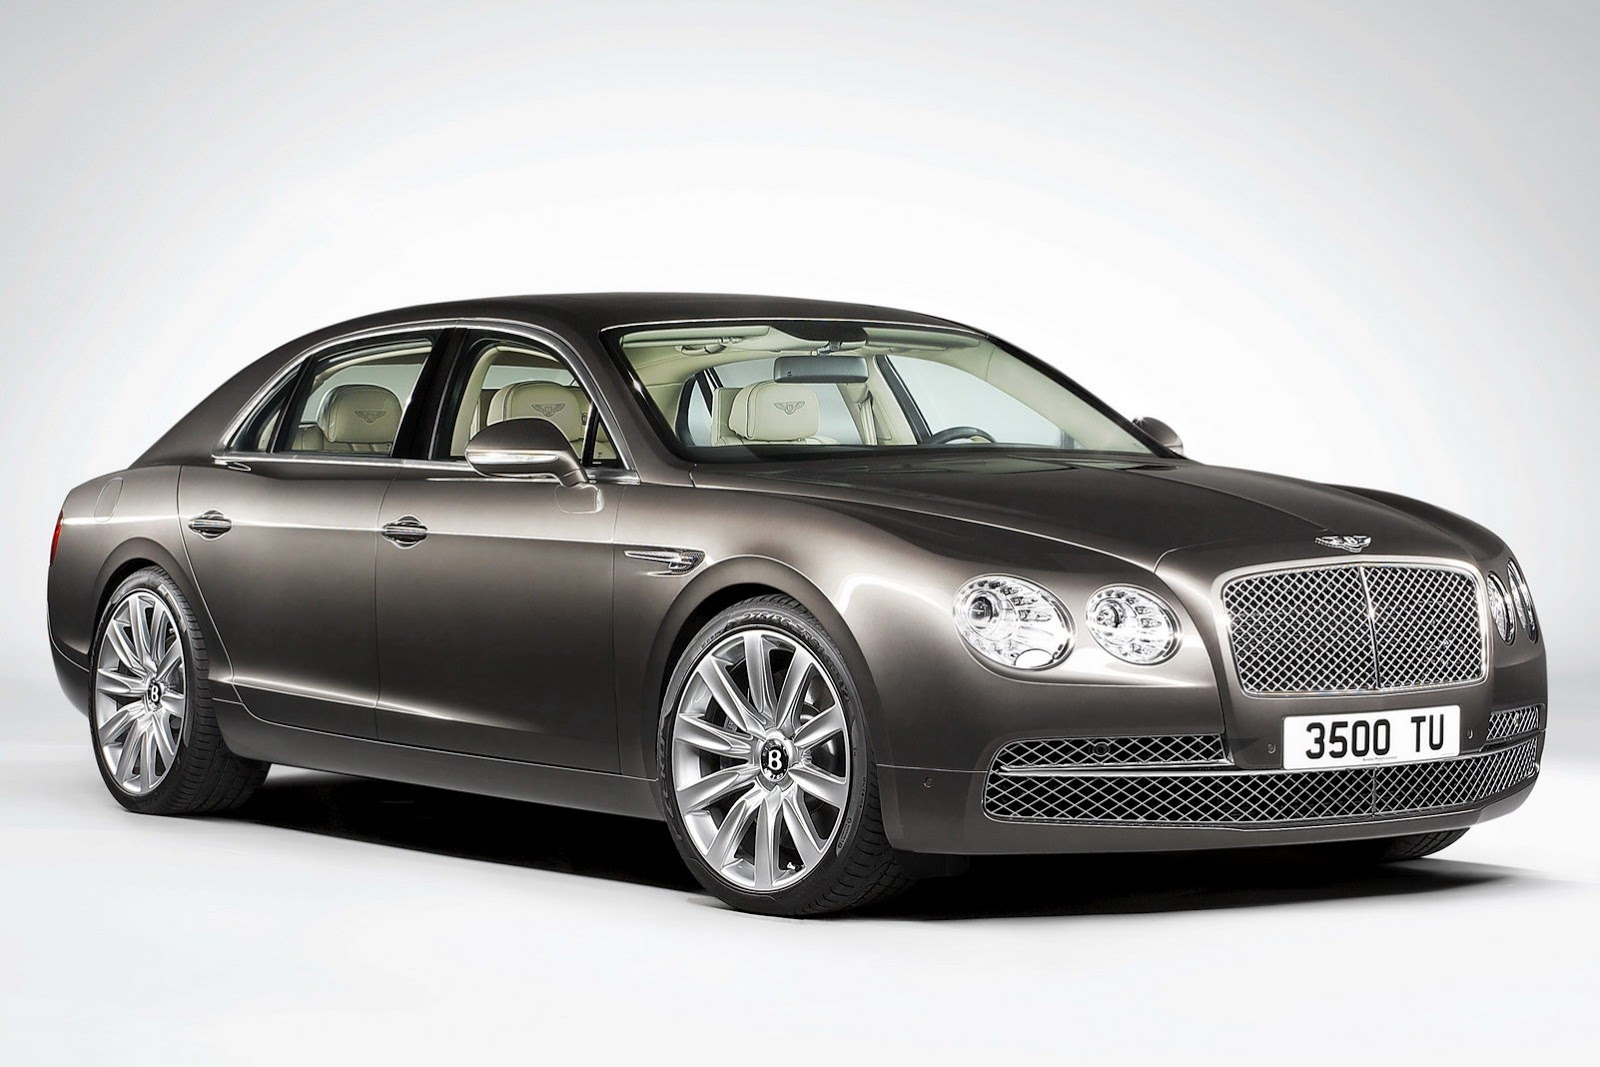 Bentley Flying Spur Wallpaper Free For Iphone Wallpaper